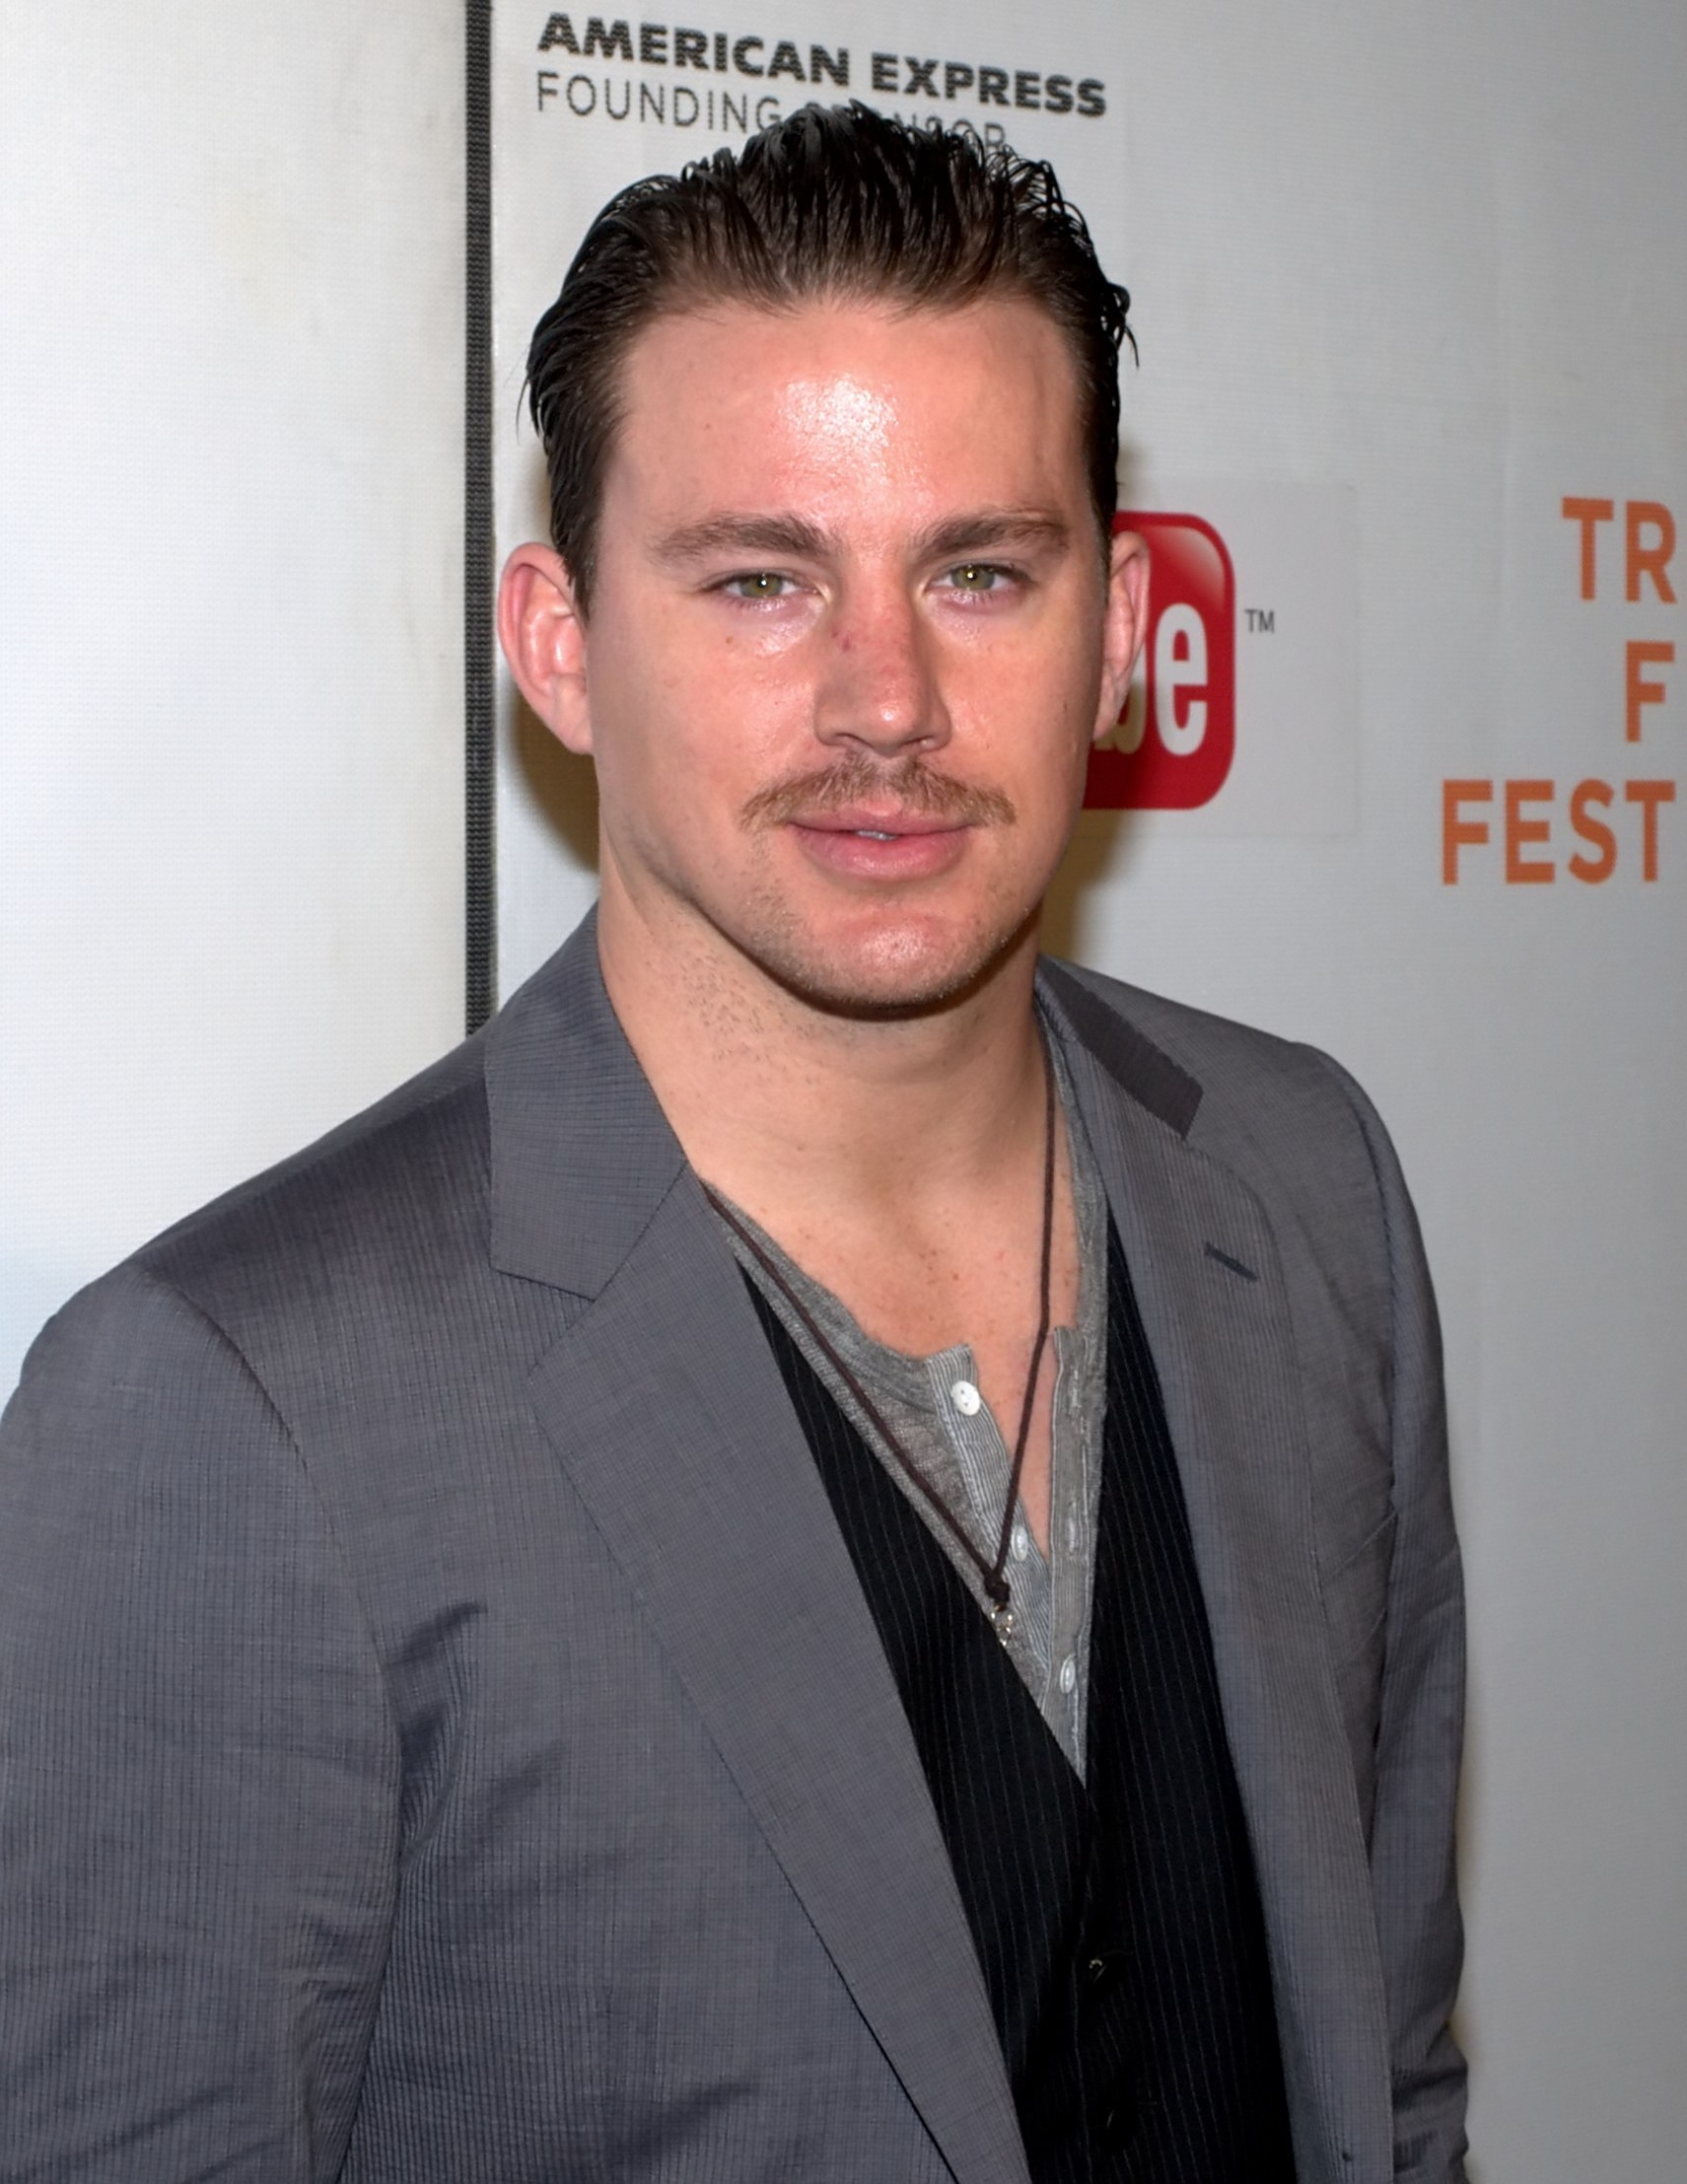 file:channing tatum by david shankbone.jpg - wikipedia, the free ...